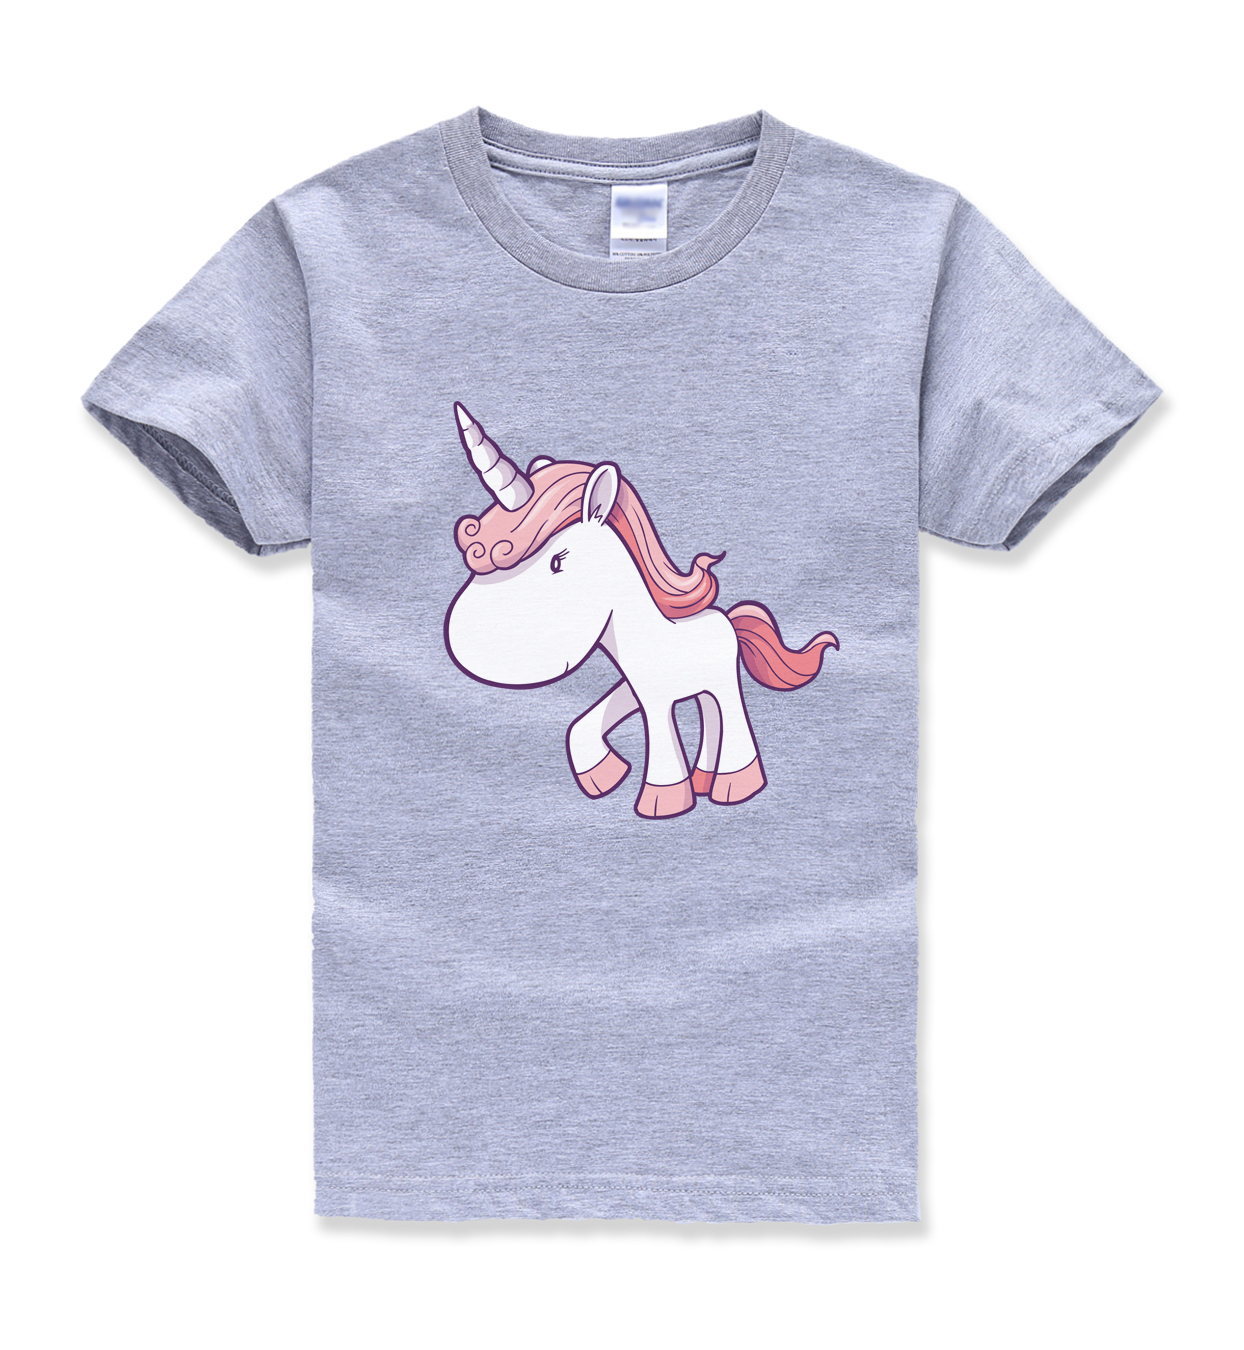 2018 summer new fashion hot sale unicorn printing tops t shirt kids horse kawaii t shirts boys girls short sleeve harajuku shirt